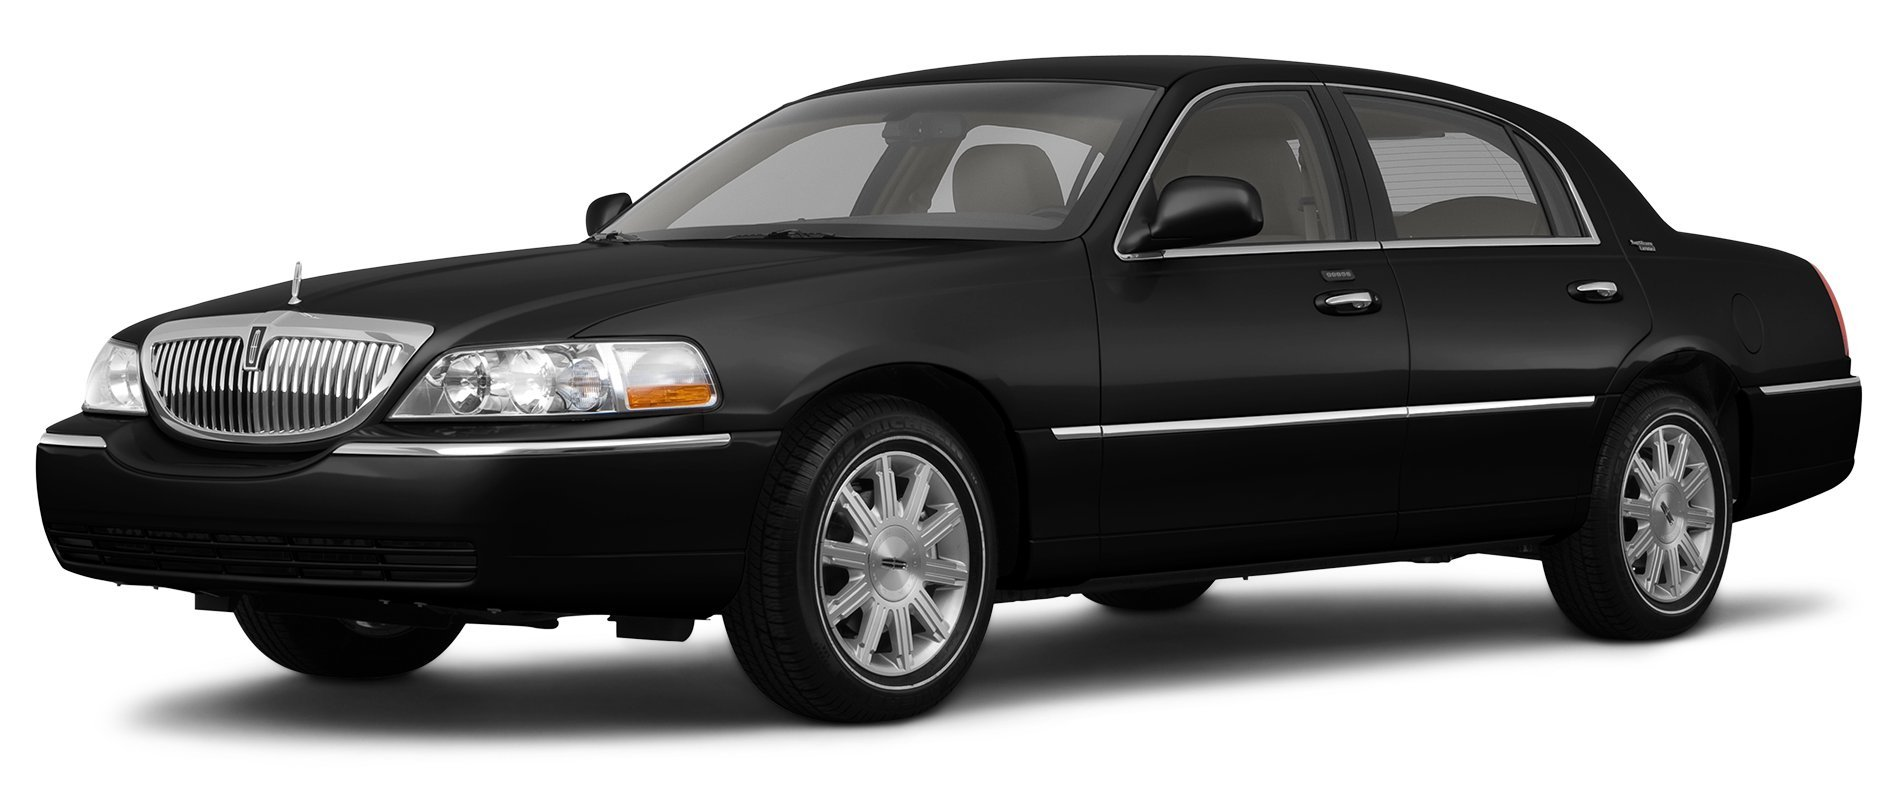 Captivating 2011 Lincoln Town Car Signature L, 4 Door Sedan ...